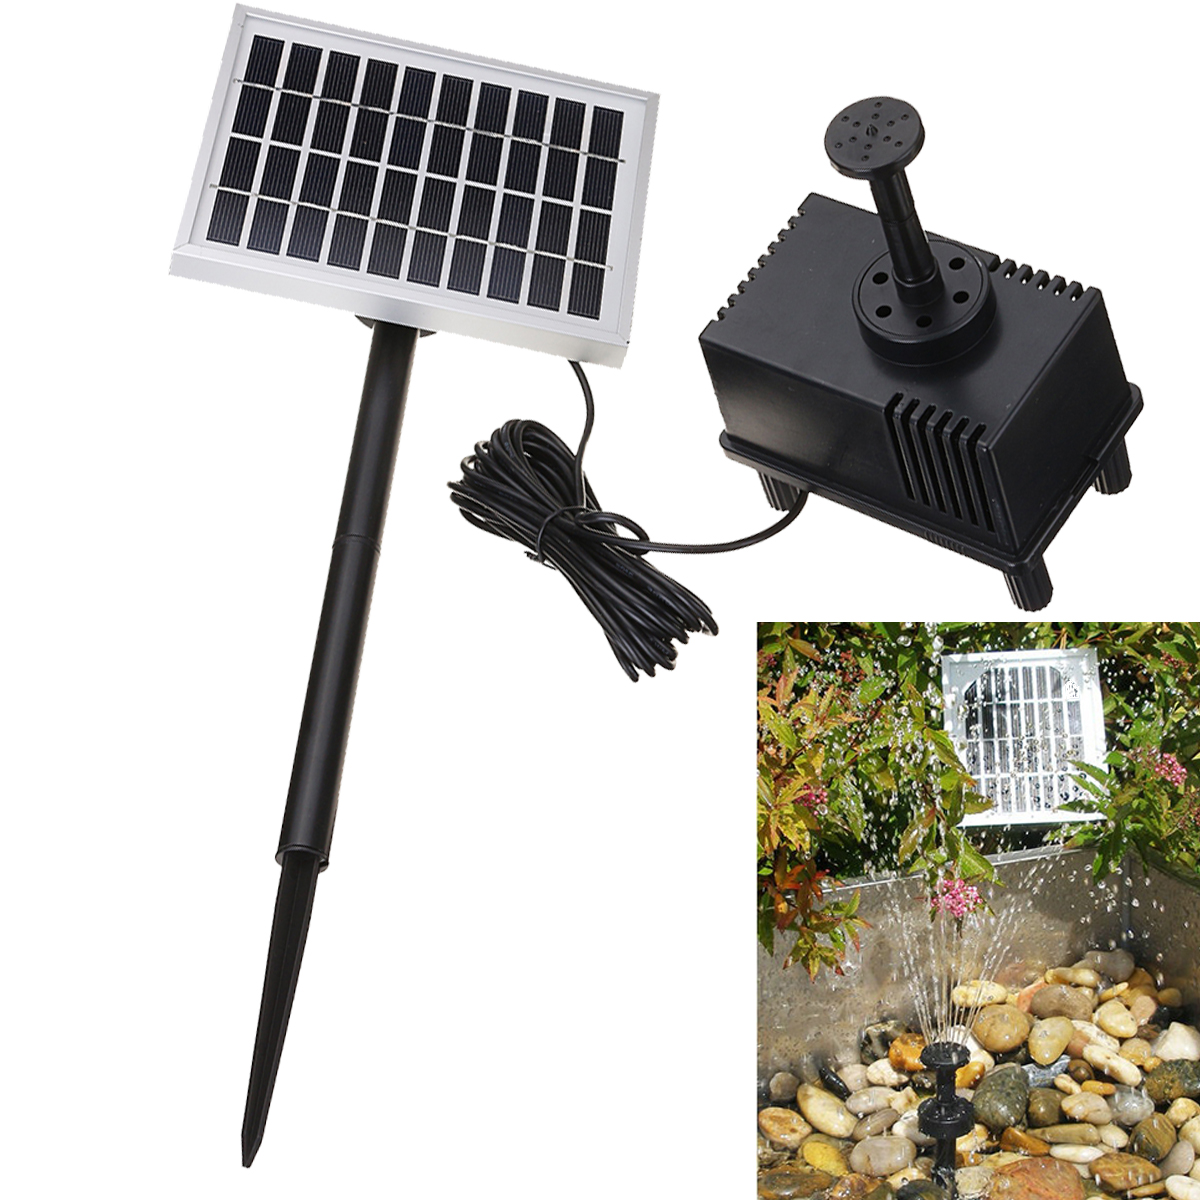 Solar Panel Power Pump Brushless Solar Powered Submersible Fountain Pool Pond Water Pump Garden Plants Watering Kit 3 years guarantee solar wells pumps made in china solar pool pump kit